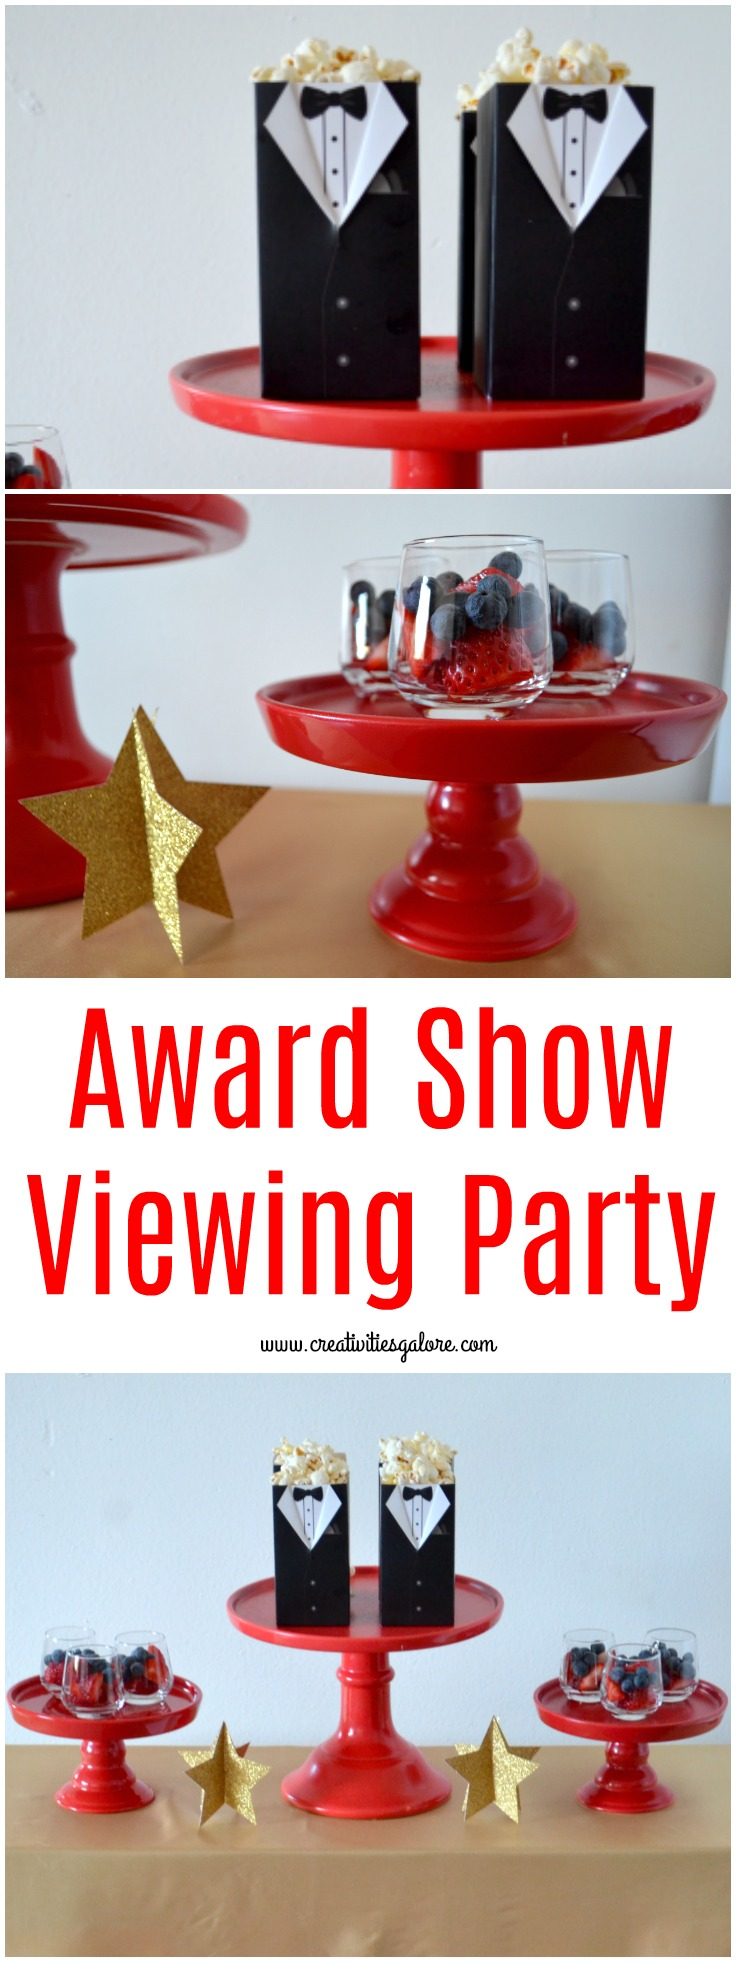 Award Show Viewing Party